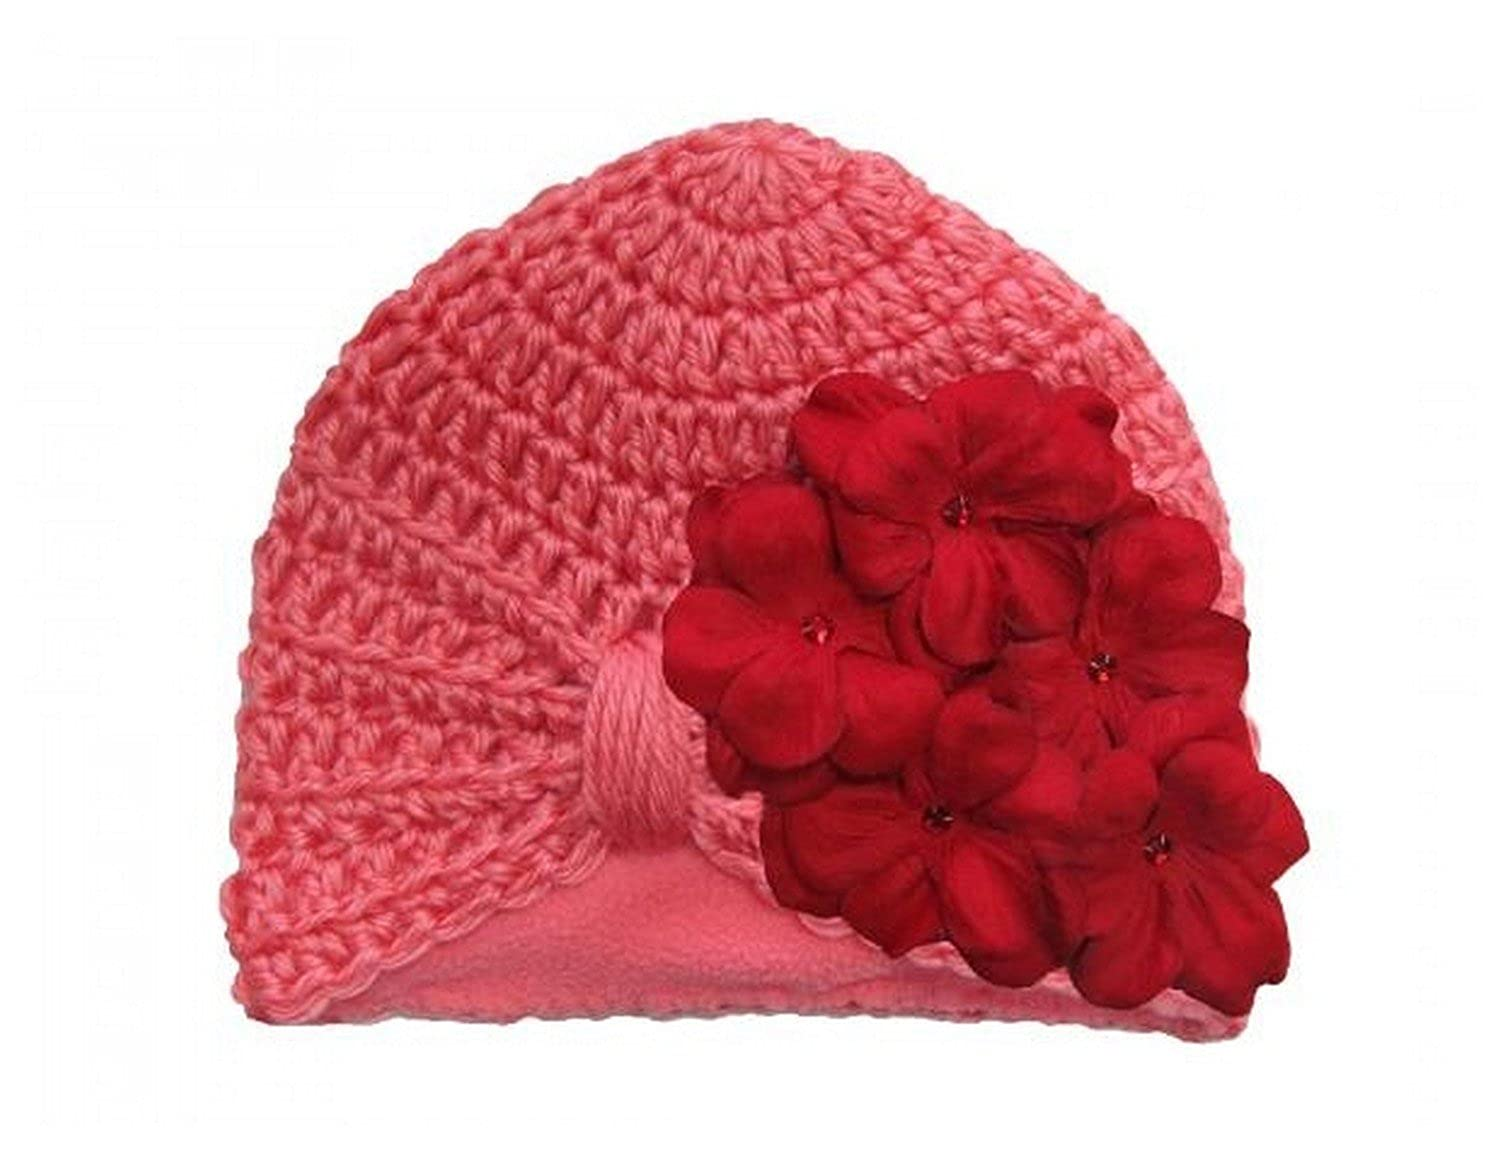 Tiny Turbans with Red Small Geraniums